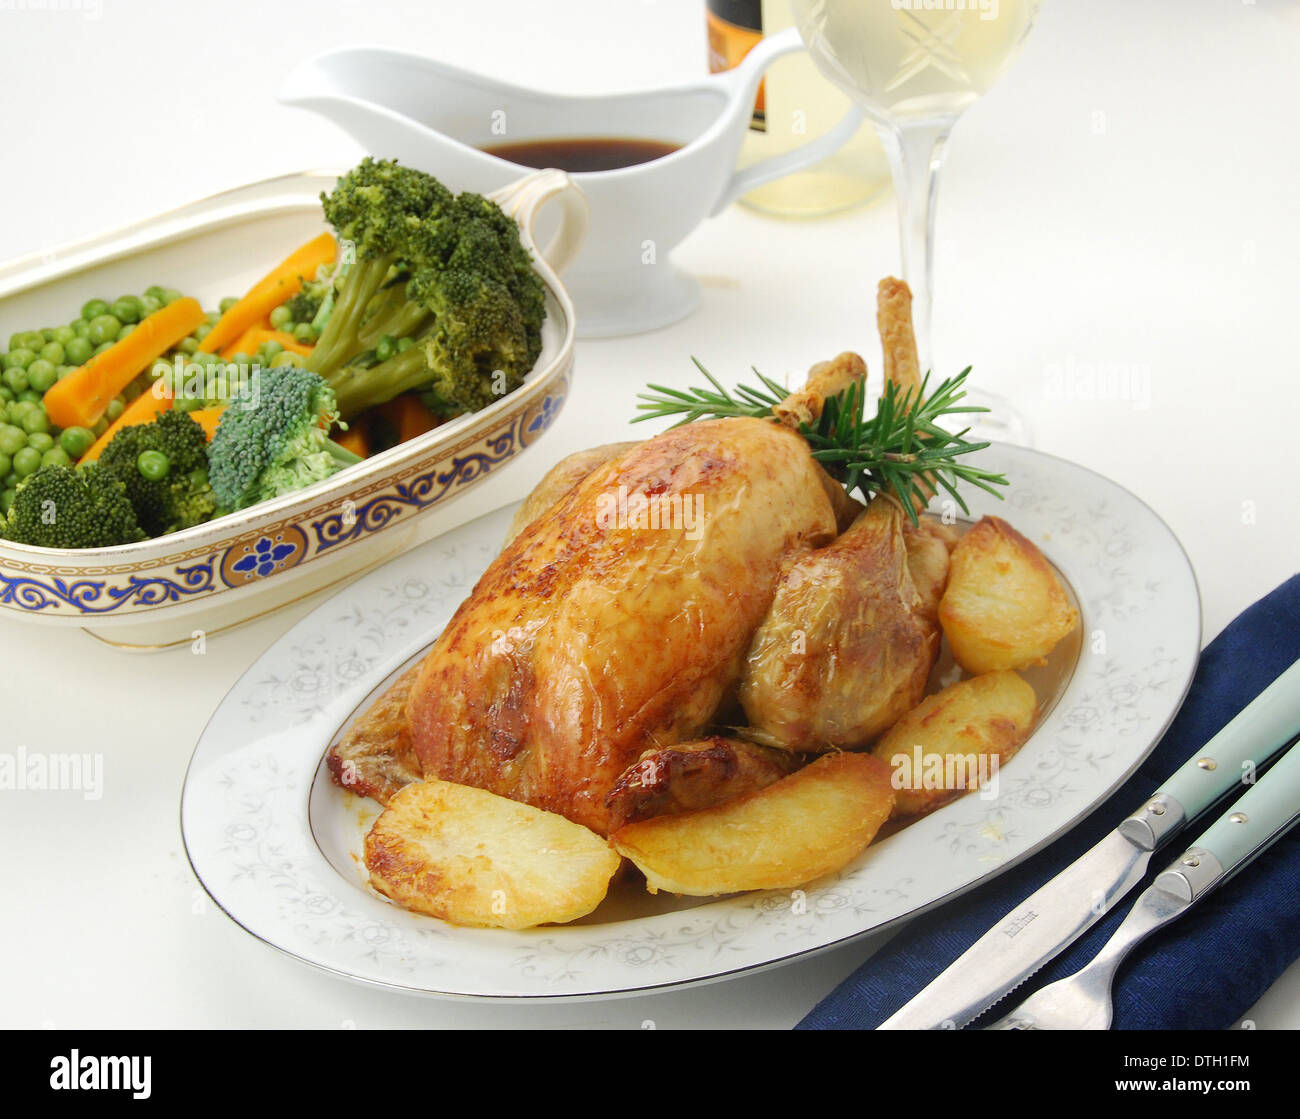 SUNDAY ROAST. Oven roast chicken with golden roast potatoes, mixed vegetables, gravy and a glass of white wine - Stock Image